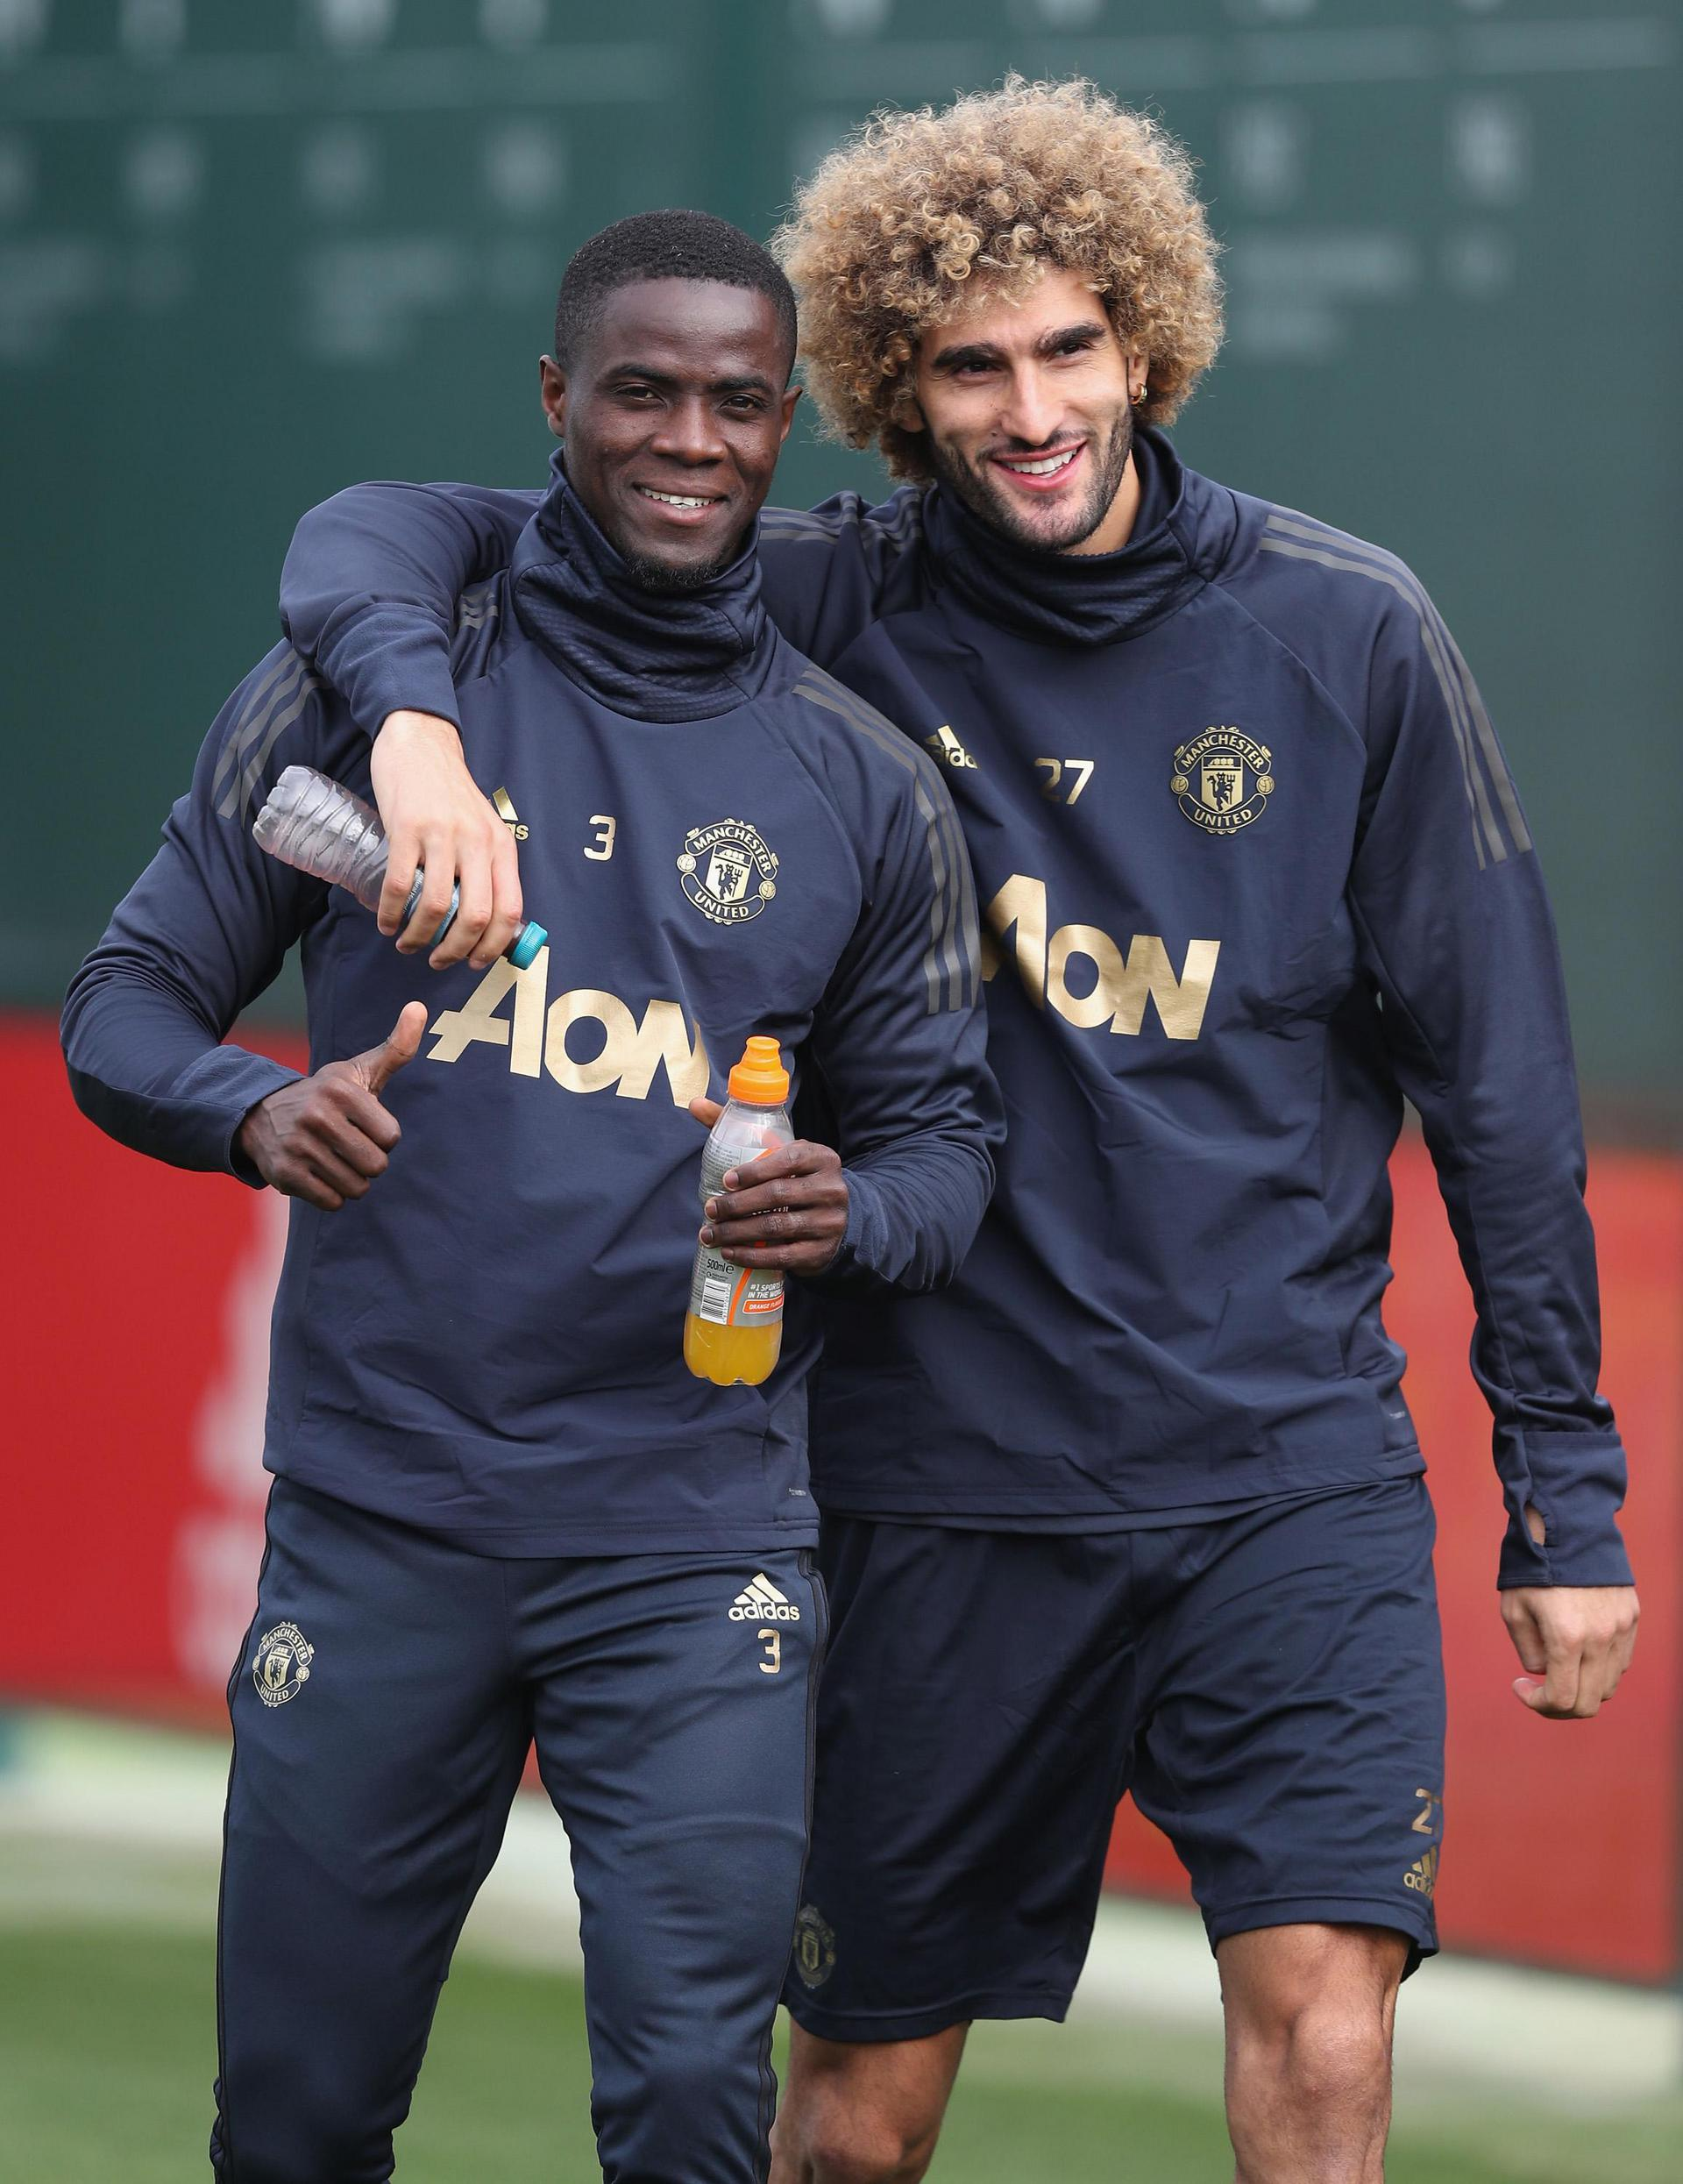 Eric Bailly and Marouane Fellaini during a Manchester United training session.